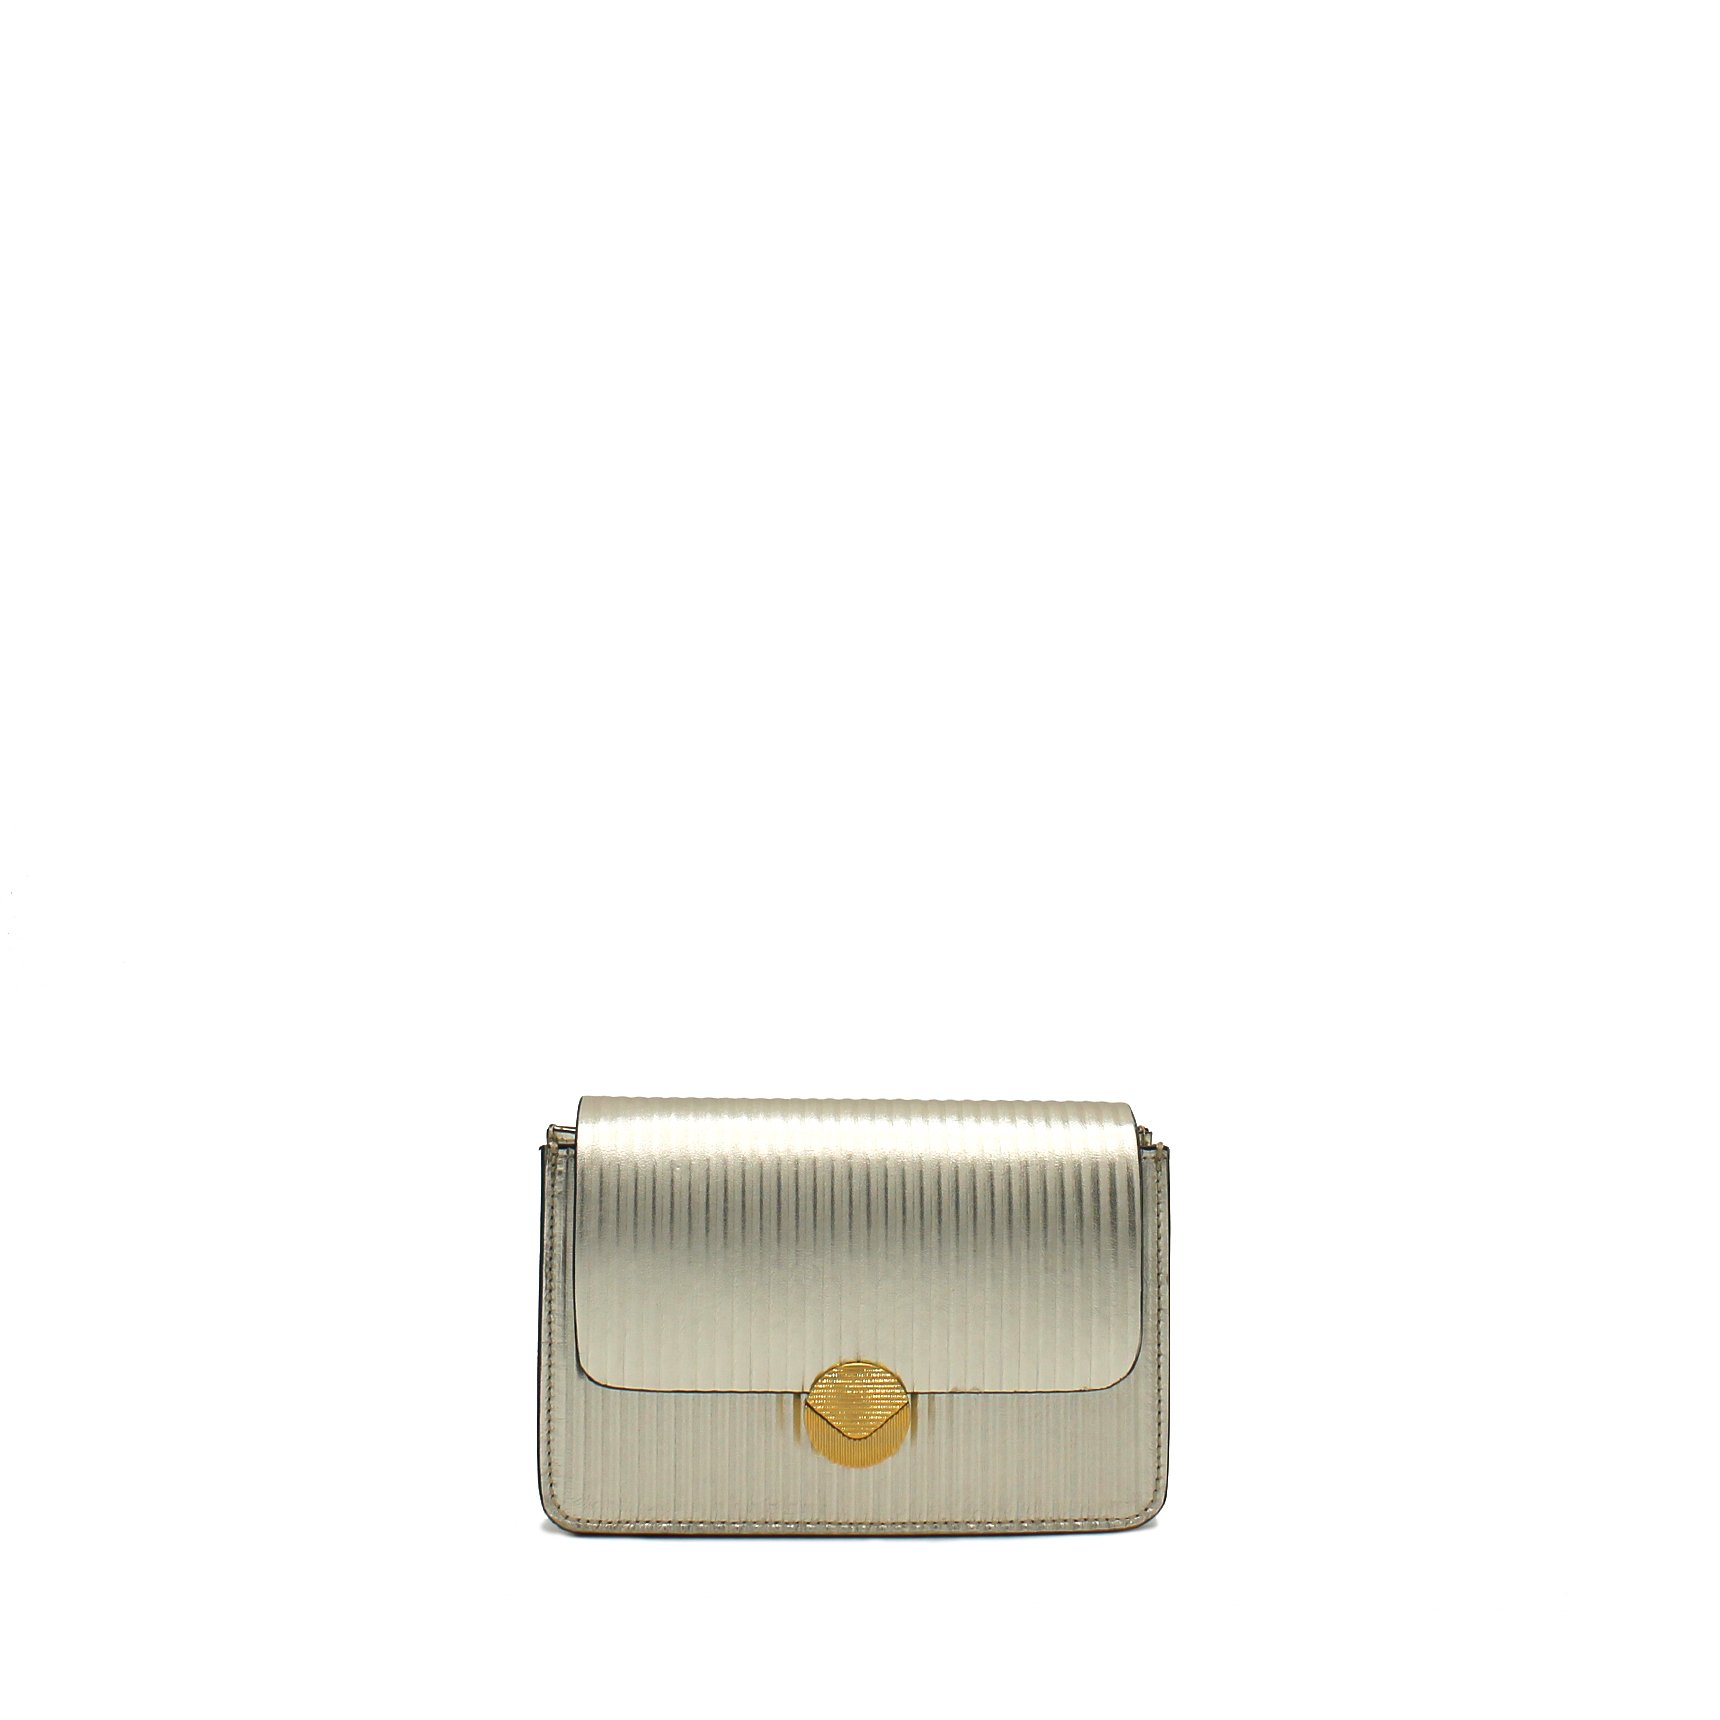 LIZZY ST SMALL LAM. LIGHT GOLD FRONTE